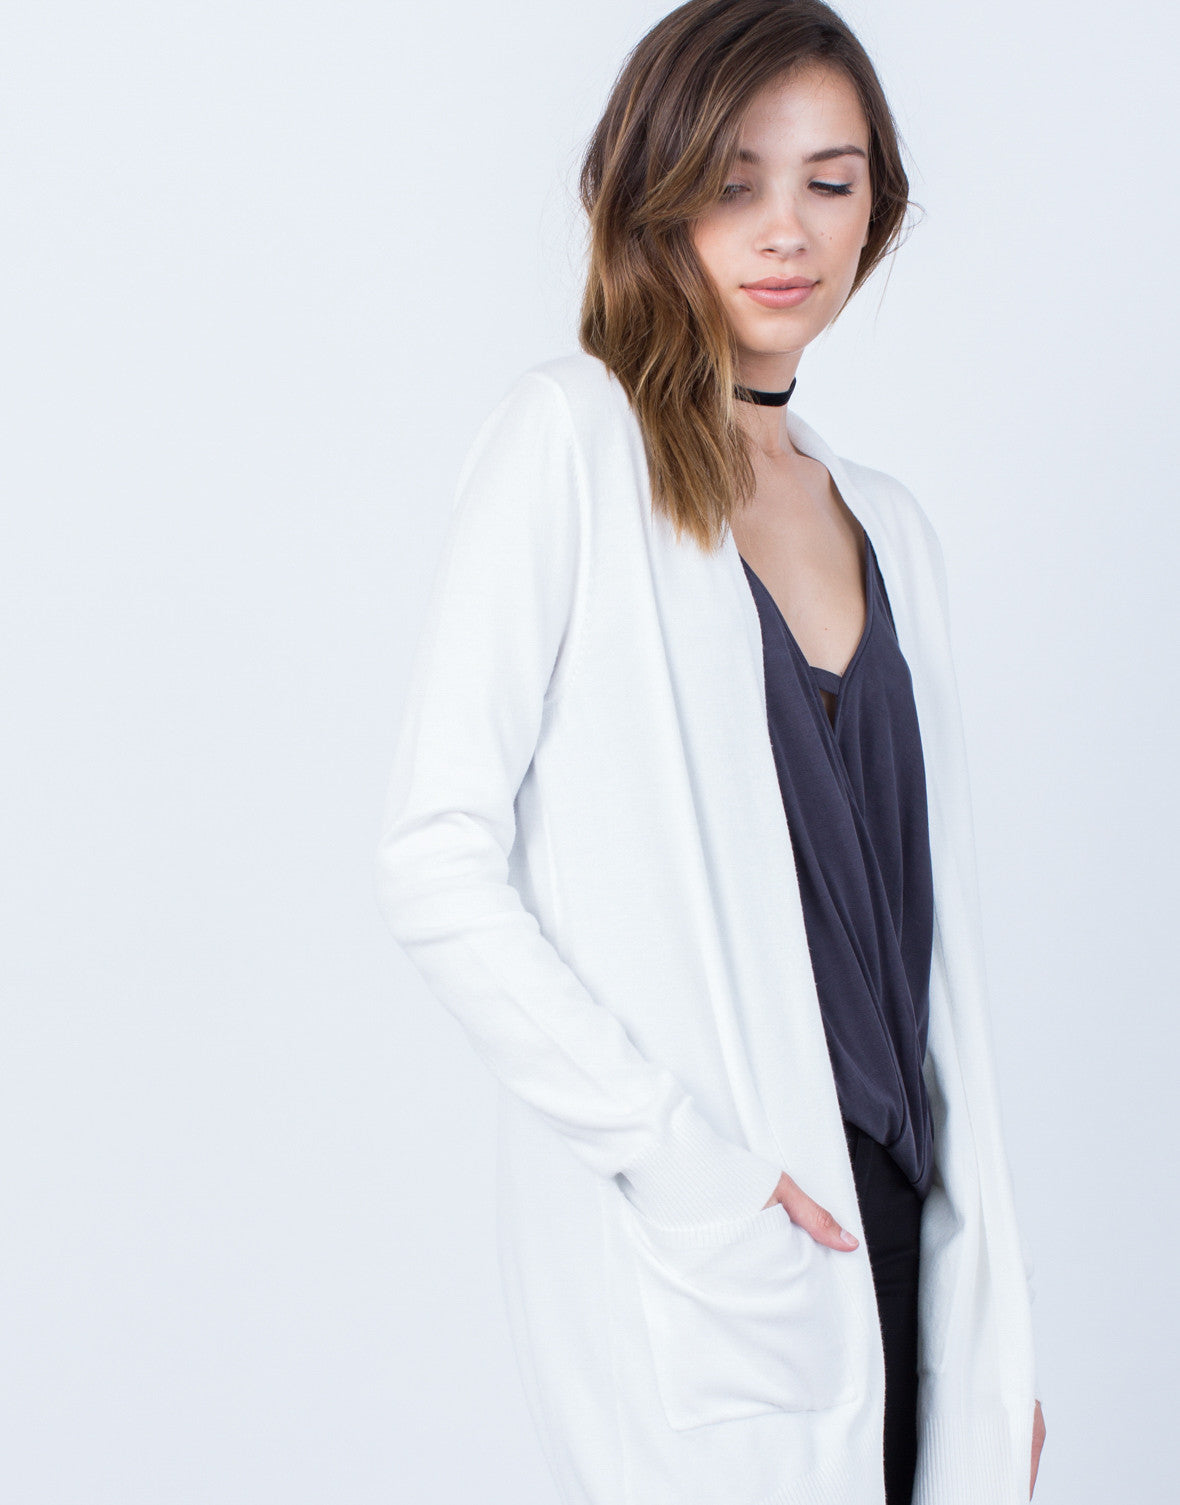 a753afde1 Super Soft Knitted Cardigan - White Knit Cardigan - Oatmeal Open ...